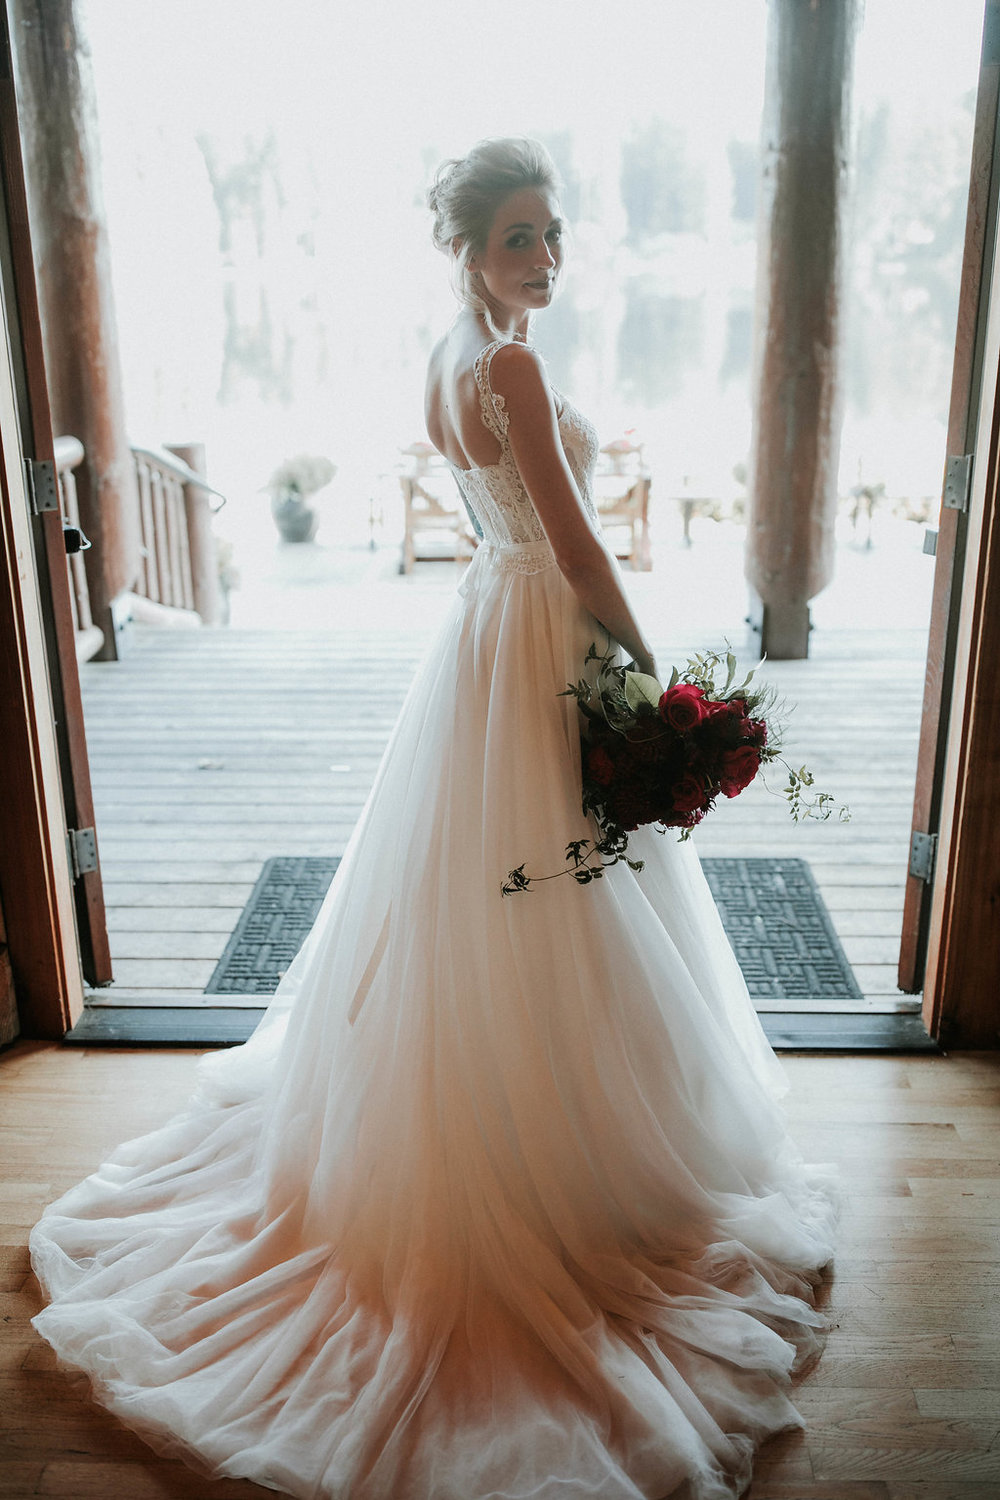 Crystal_Lake_lodge_Wedding_photos_by_Adina_Preston_Weddings_2ccccccccccccccccccc.JPG